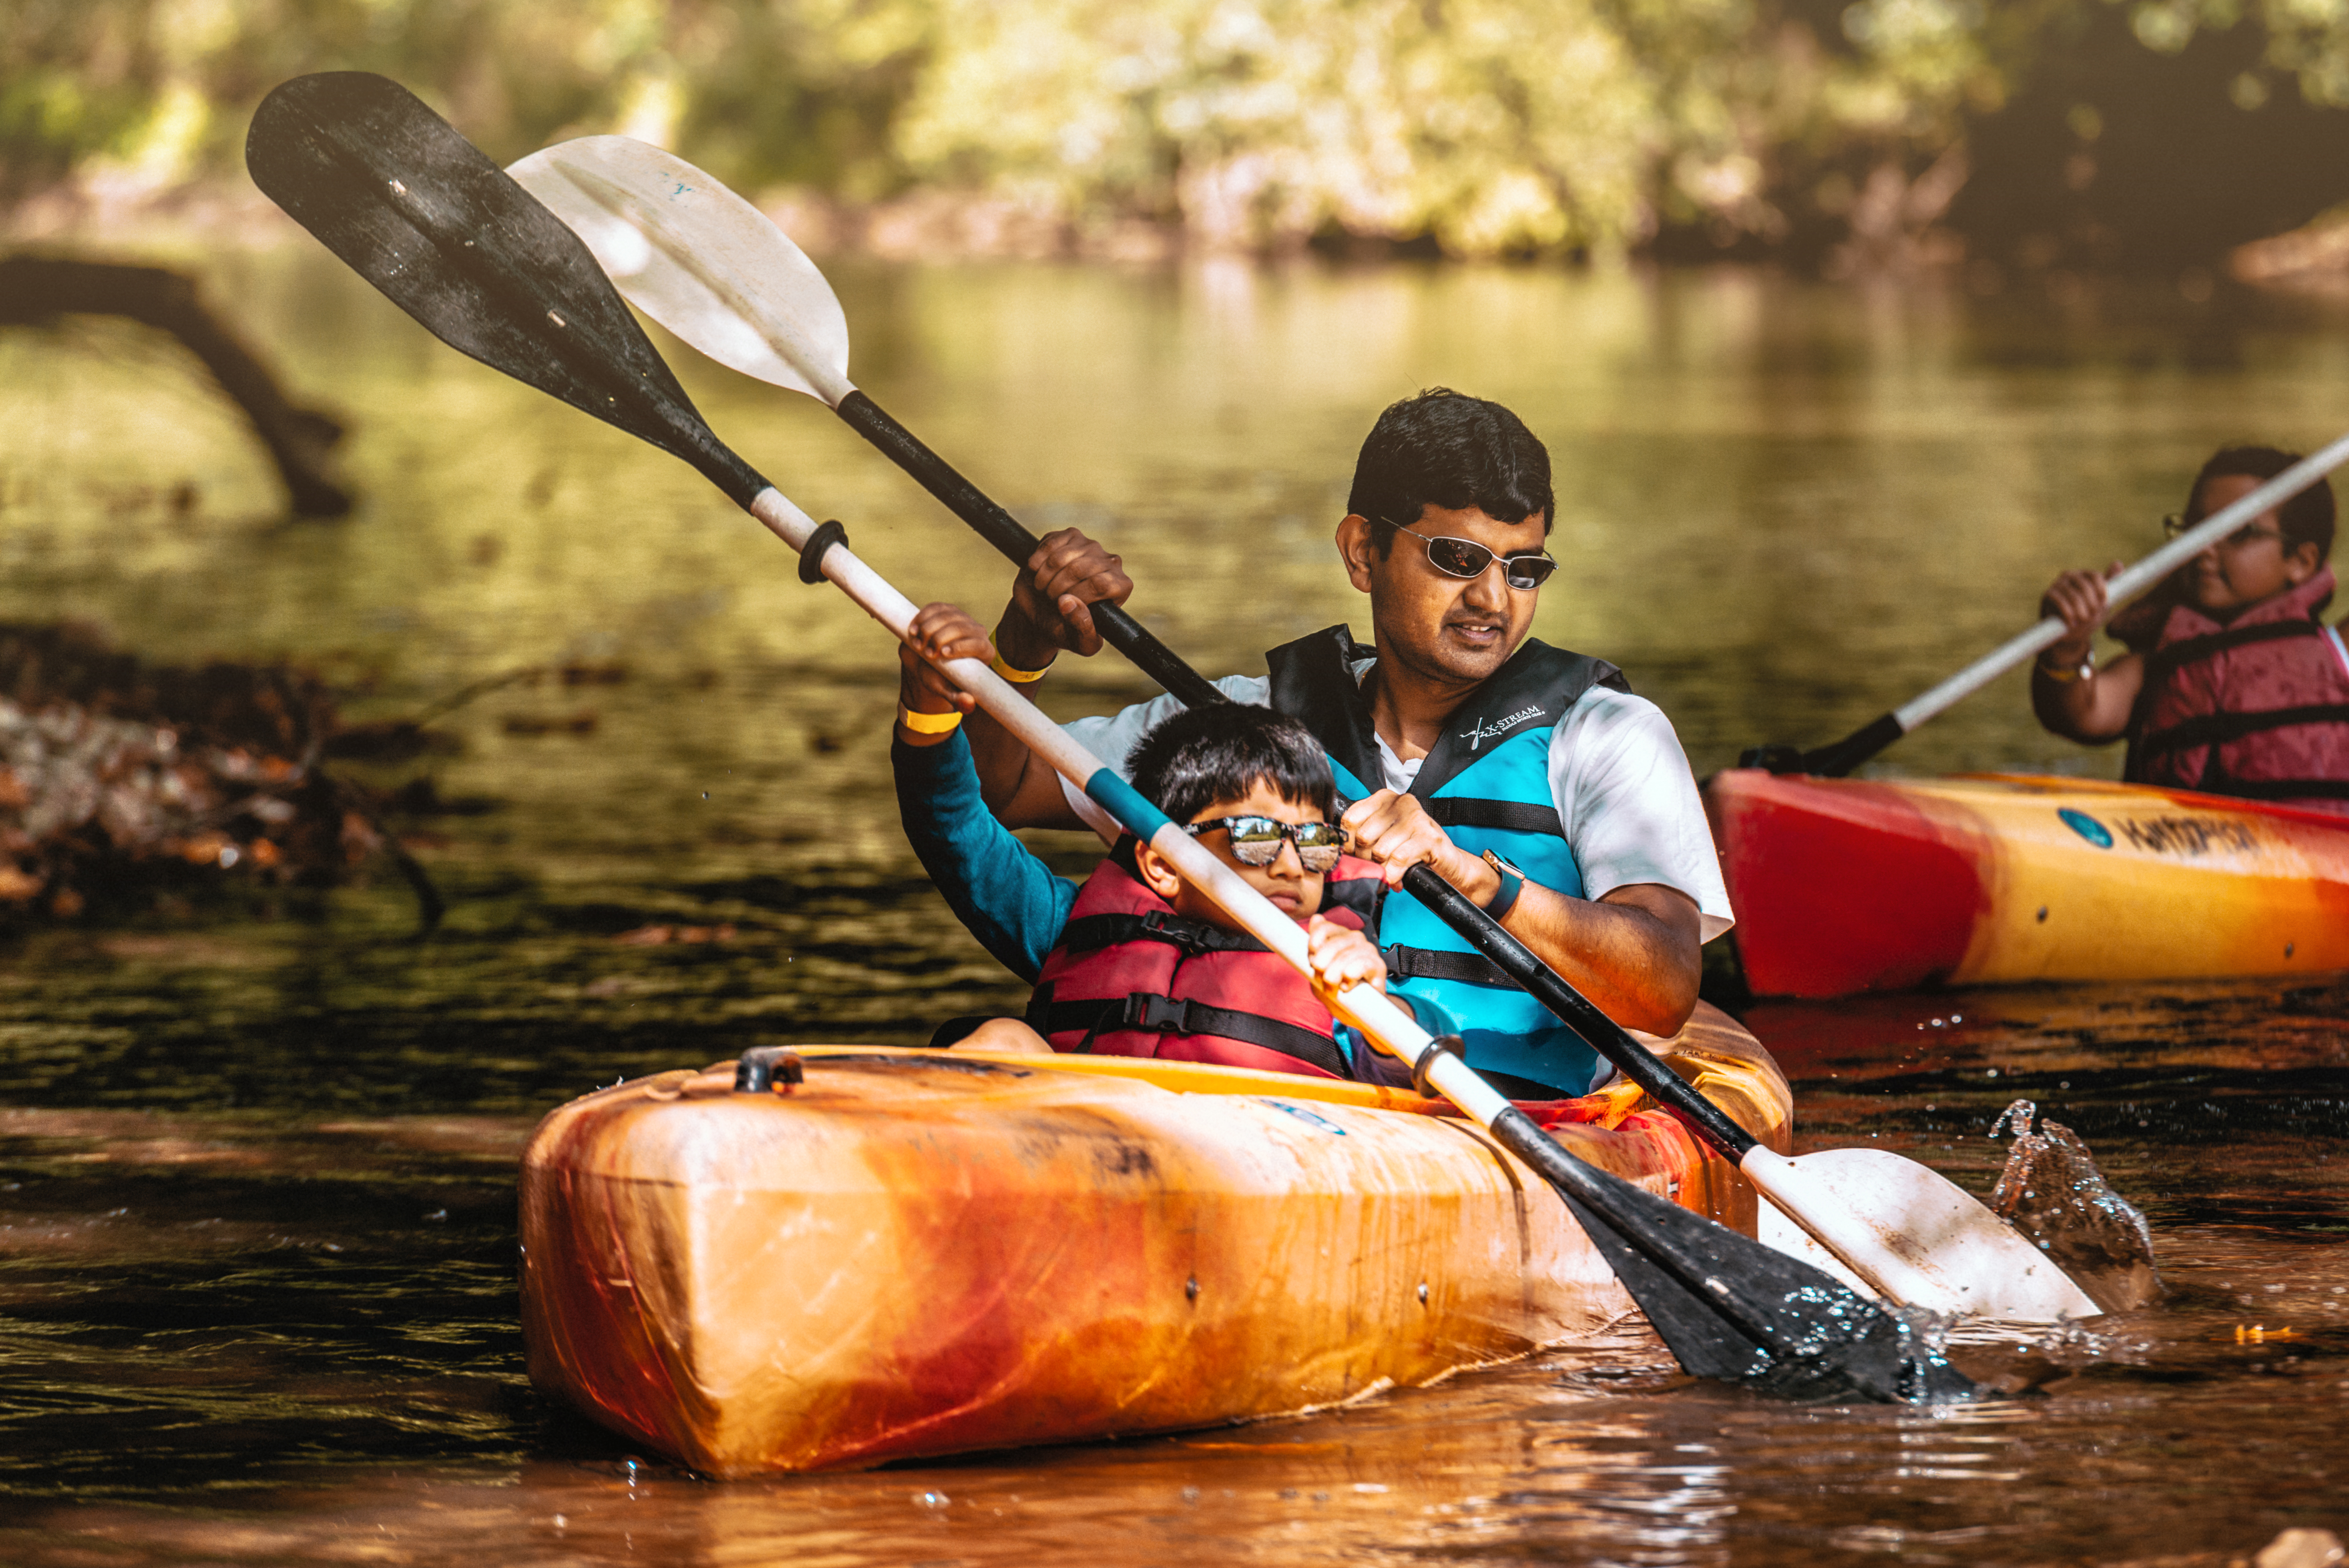 Father-Son Kayaking Trapper John's